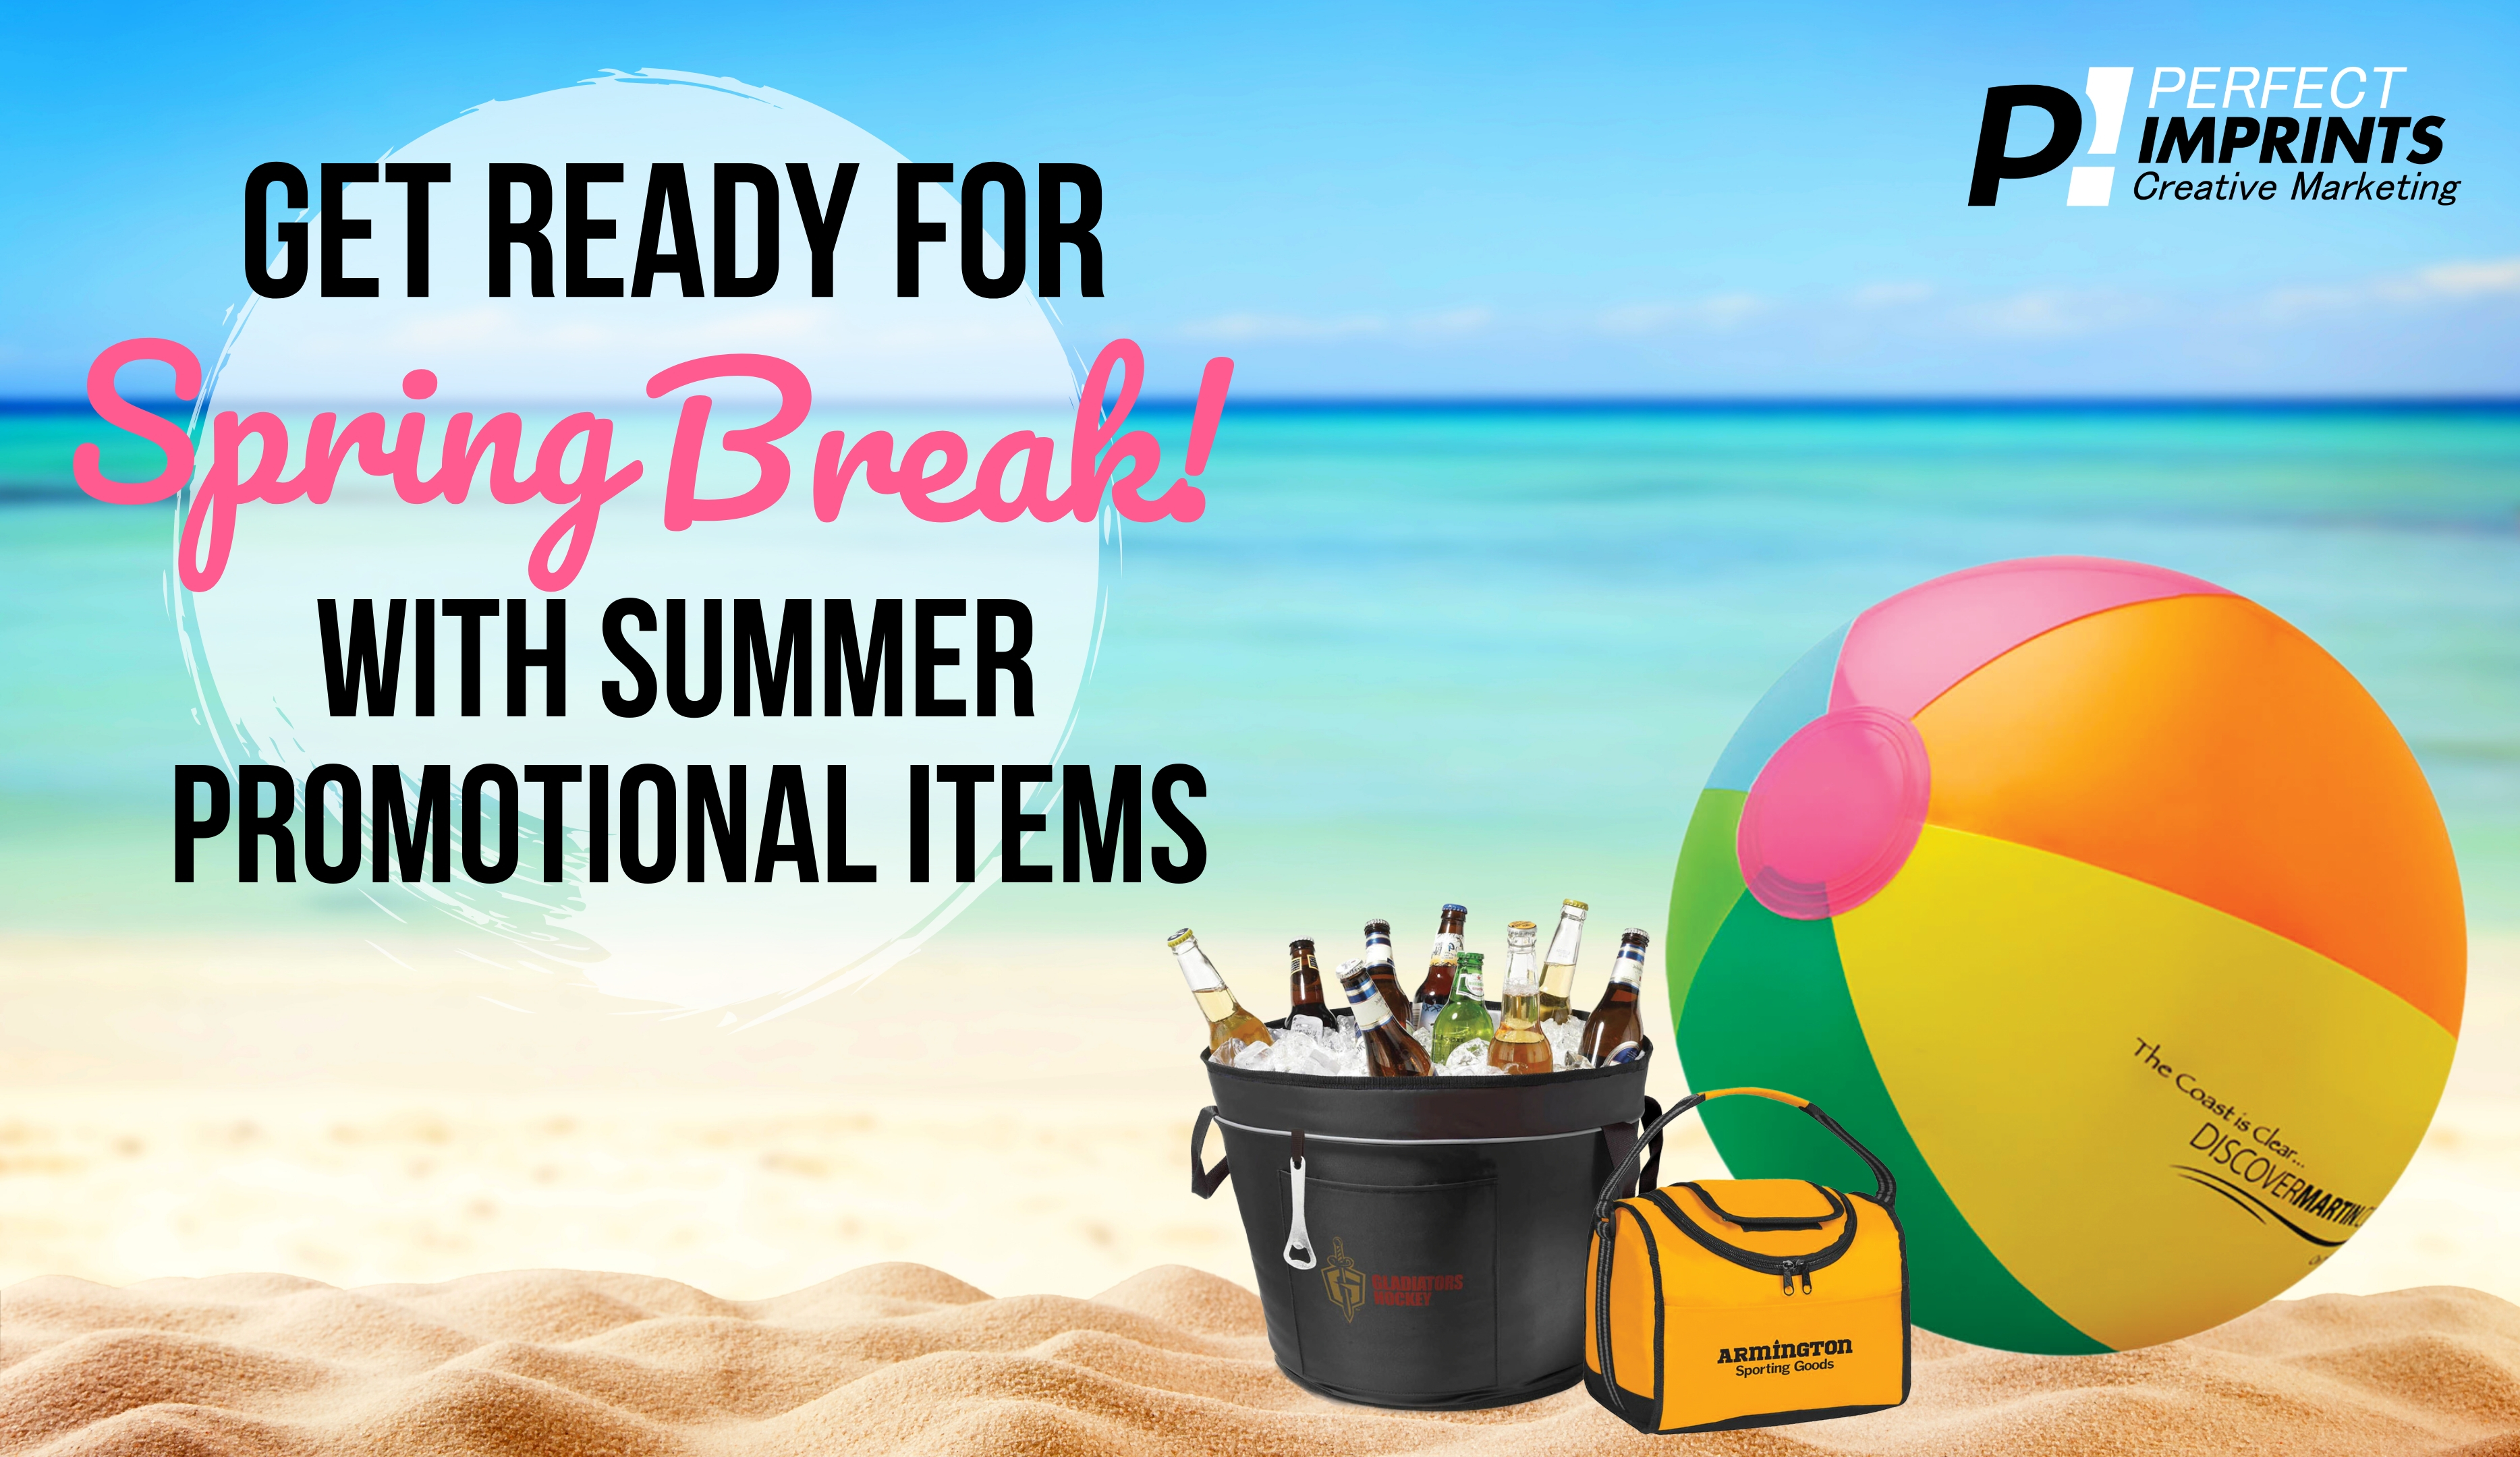 Get Ready for Spring Break with These Summer Promotional Items